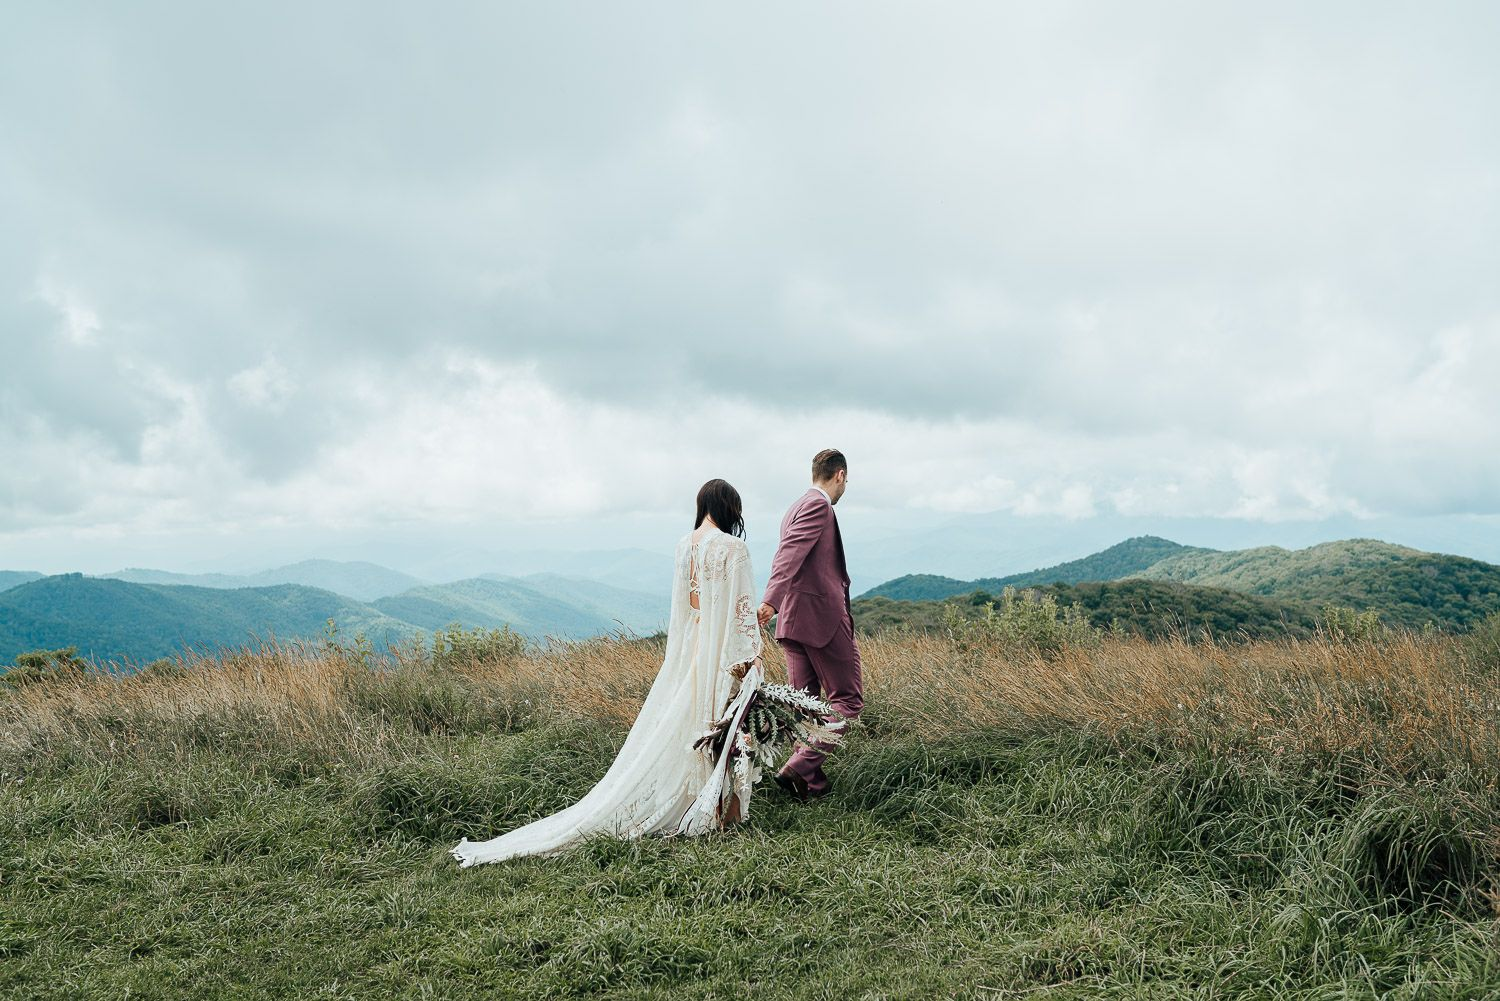 max-patch-elopement-inspiration-2-large